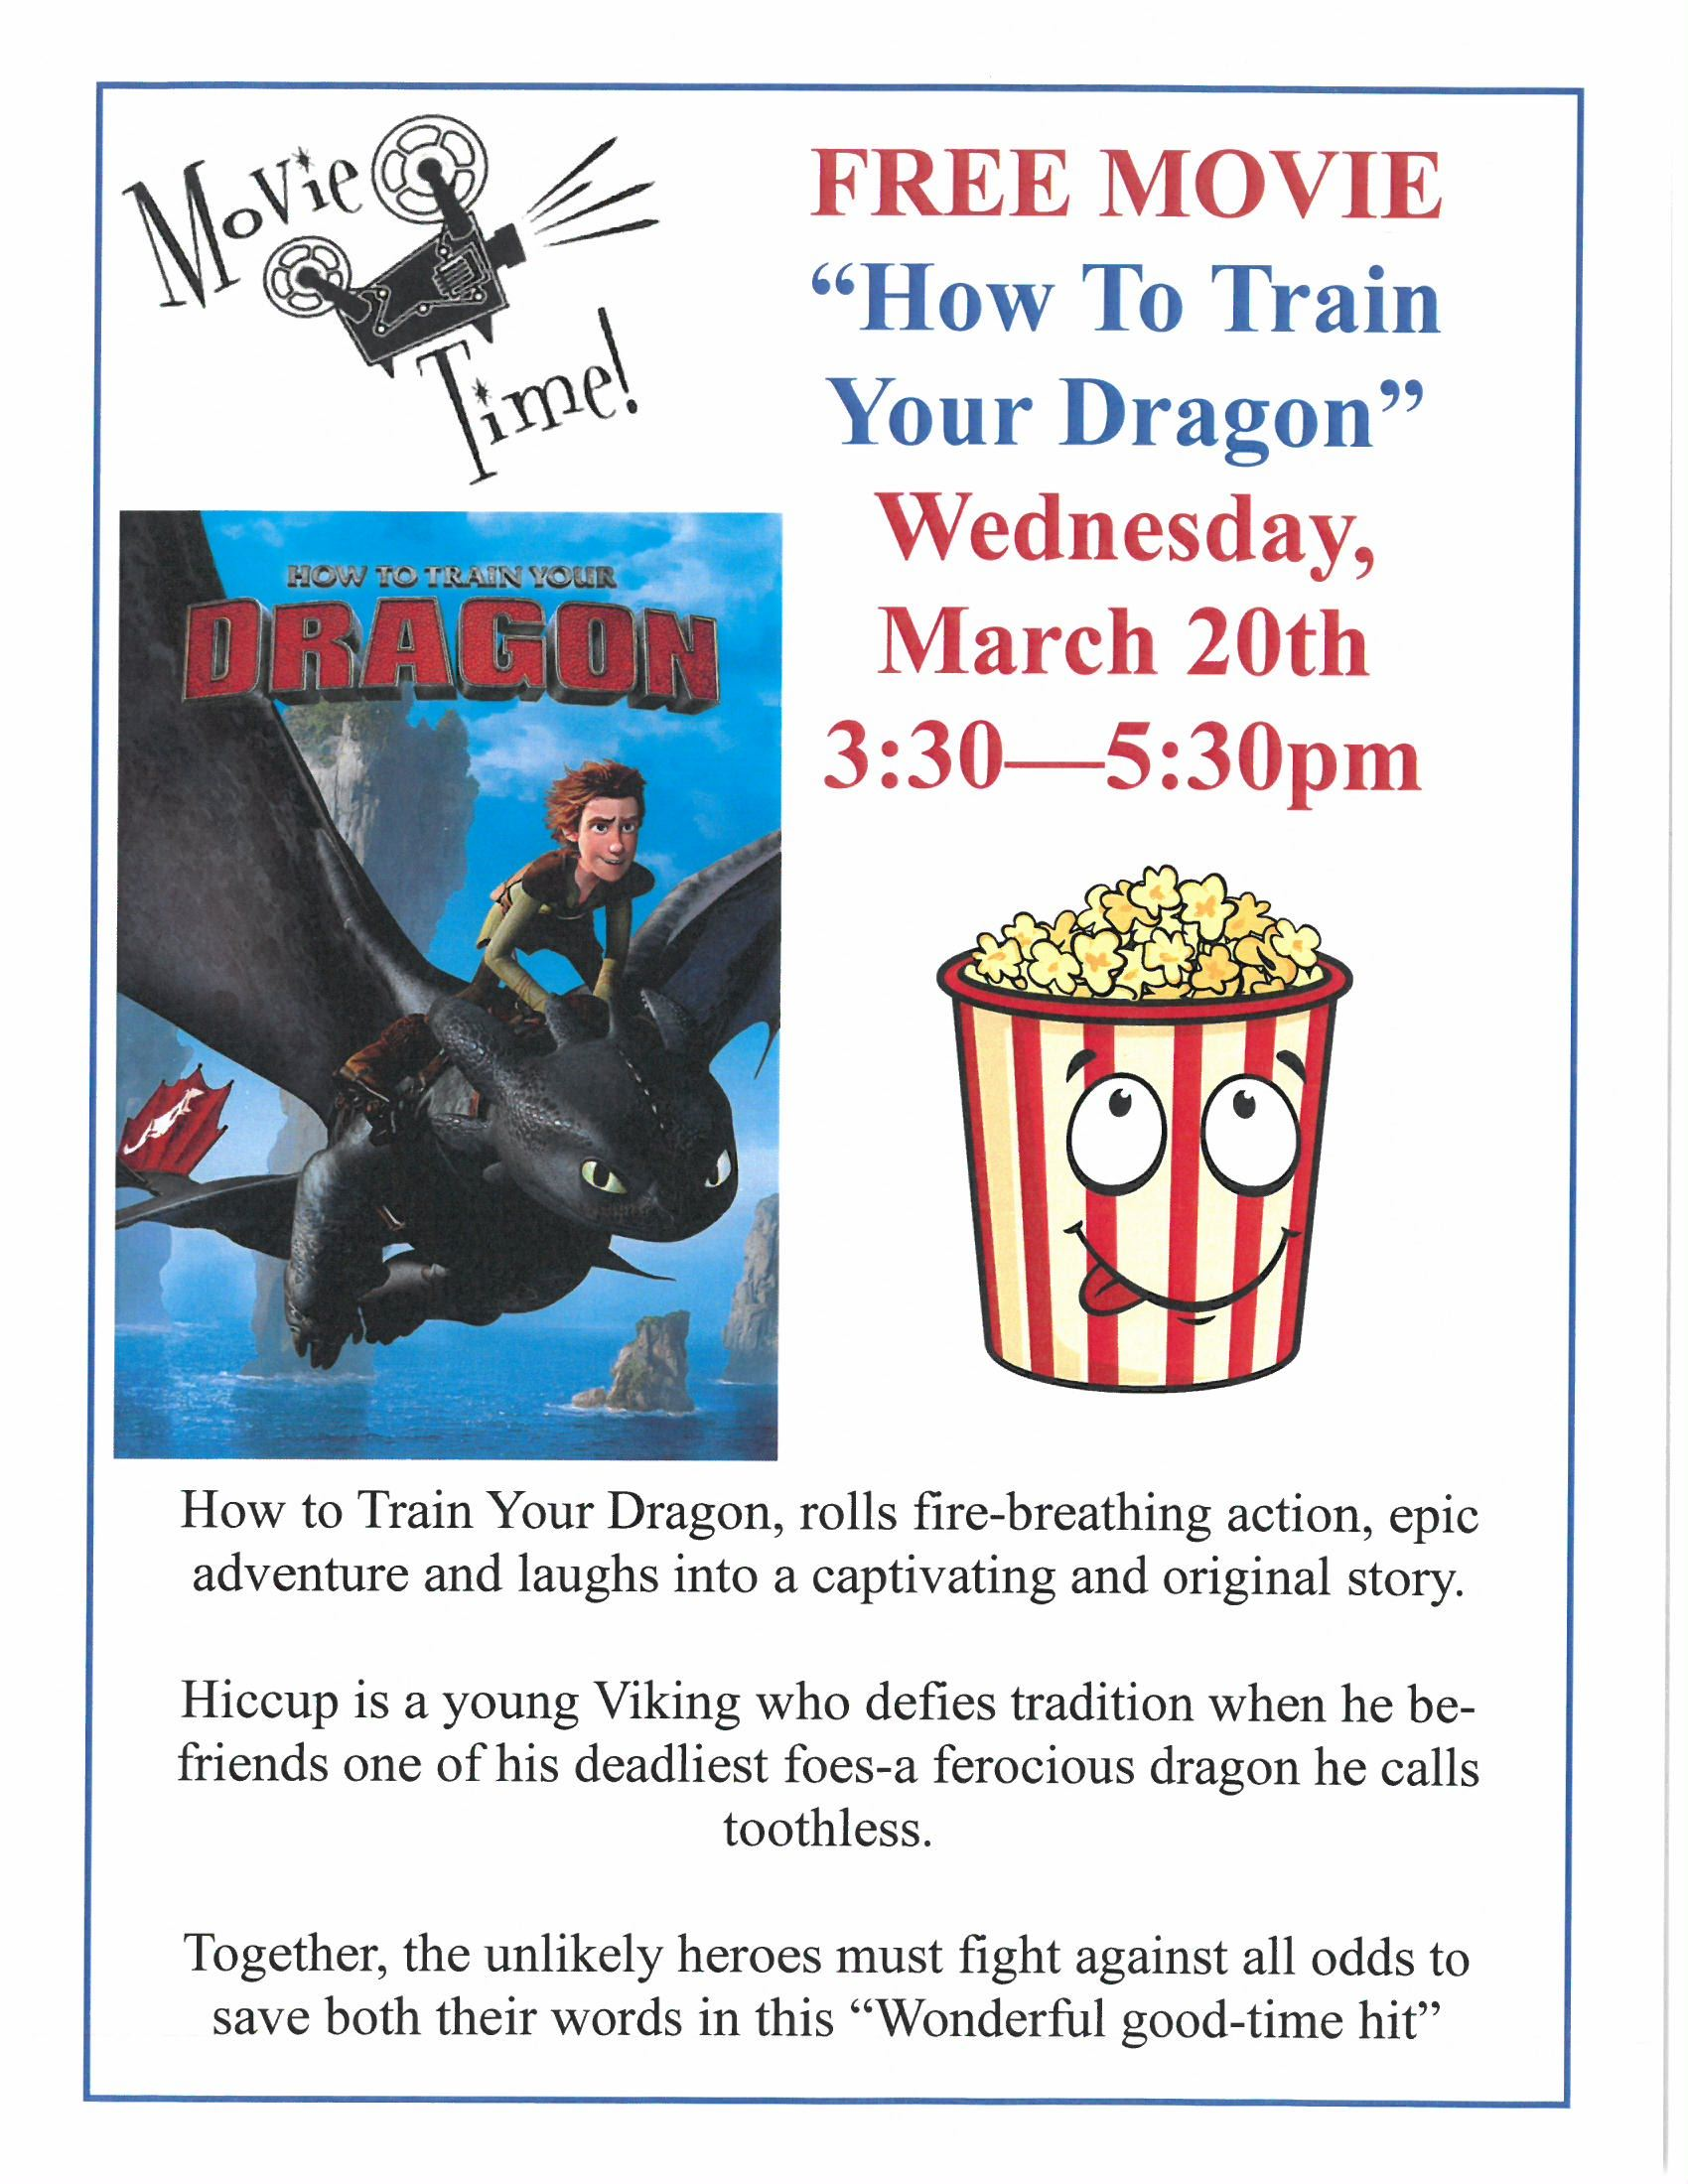 Wednesday Free Day Movie